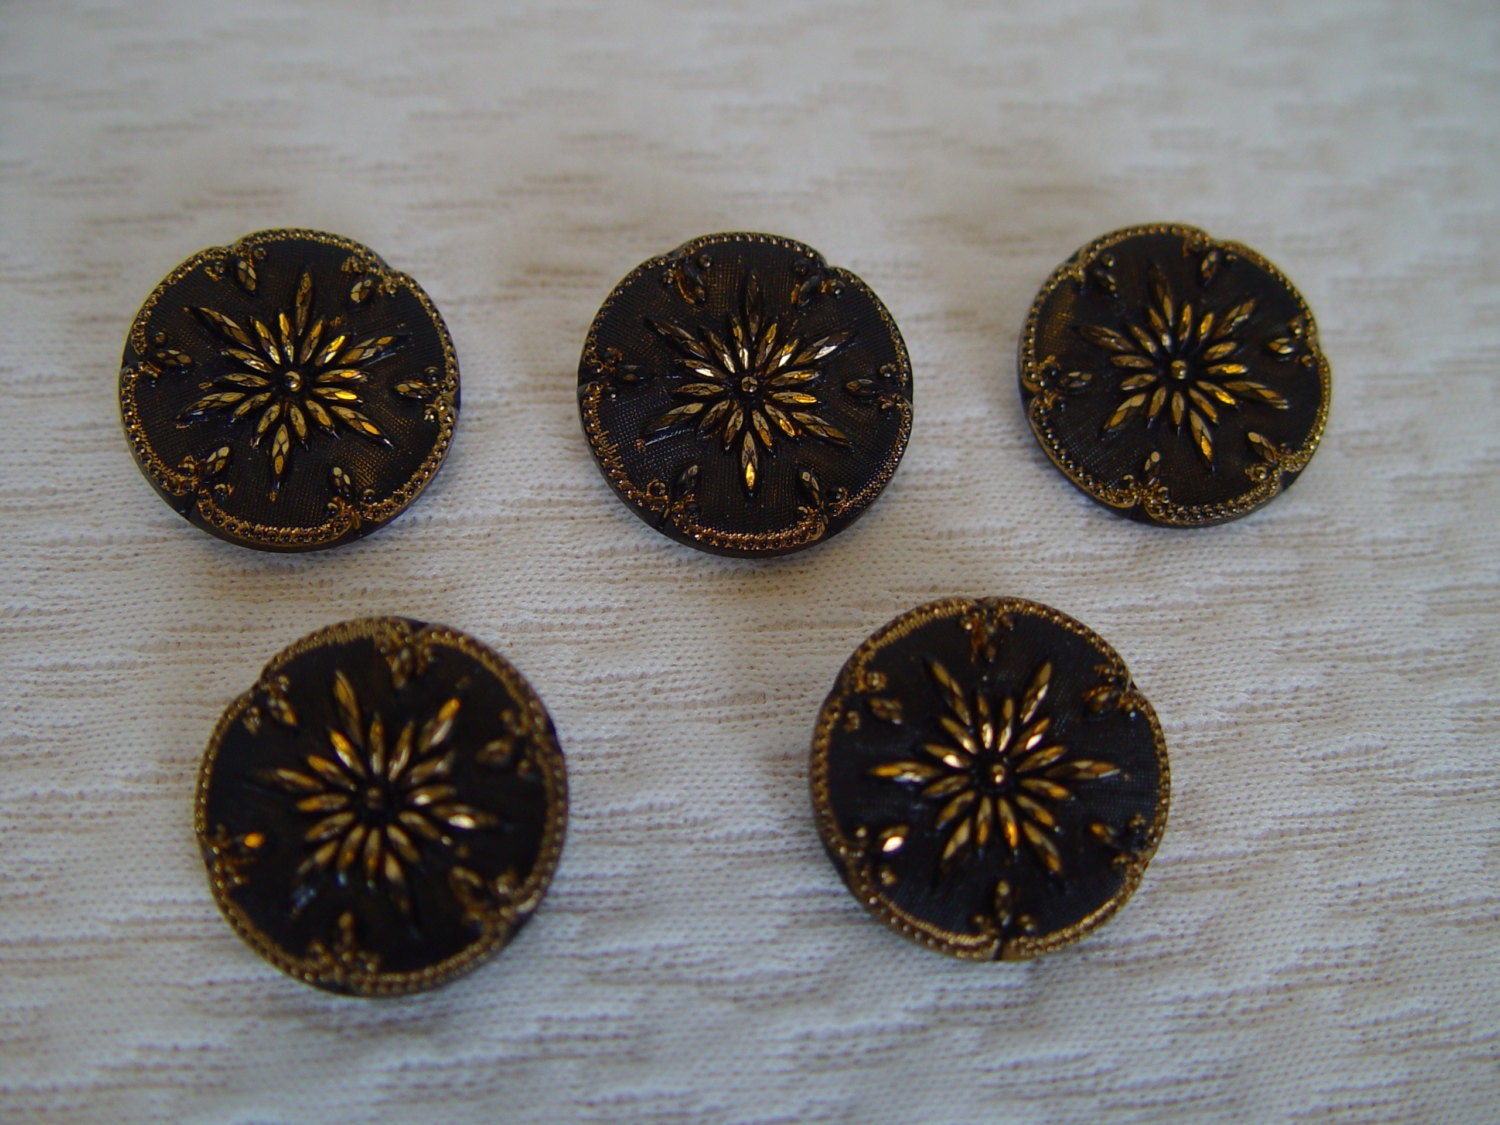 5 vintage buttons black and gold sewing supplies vintage